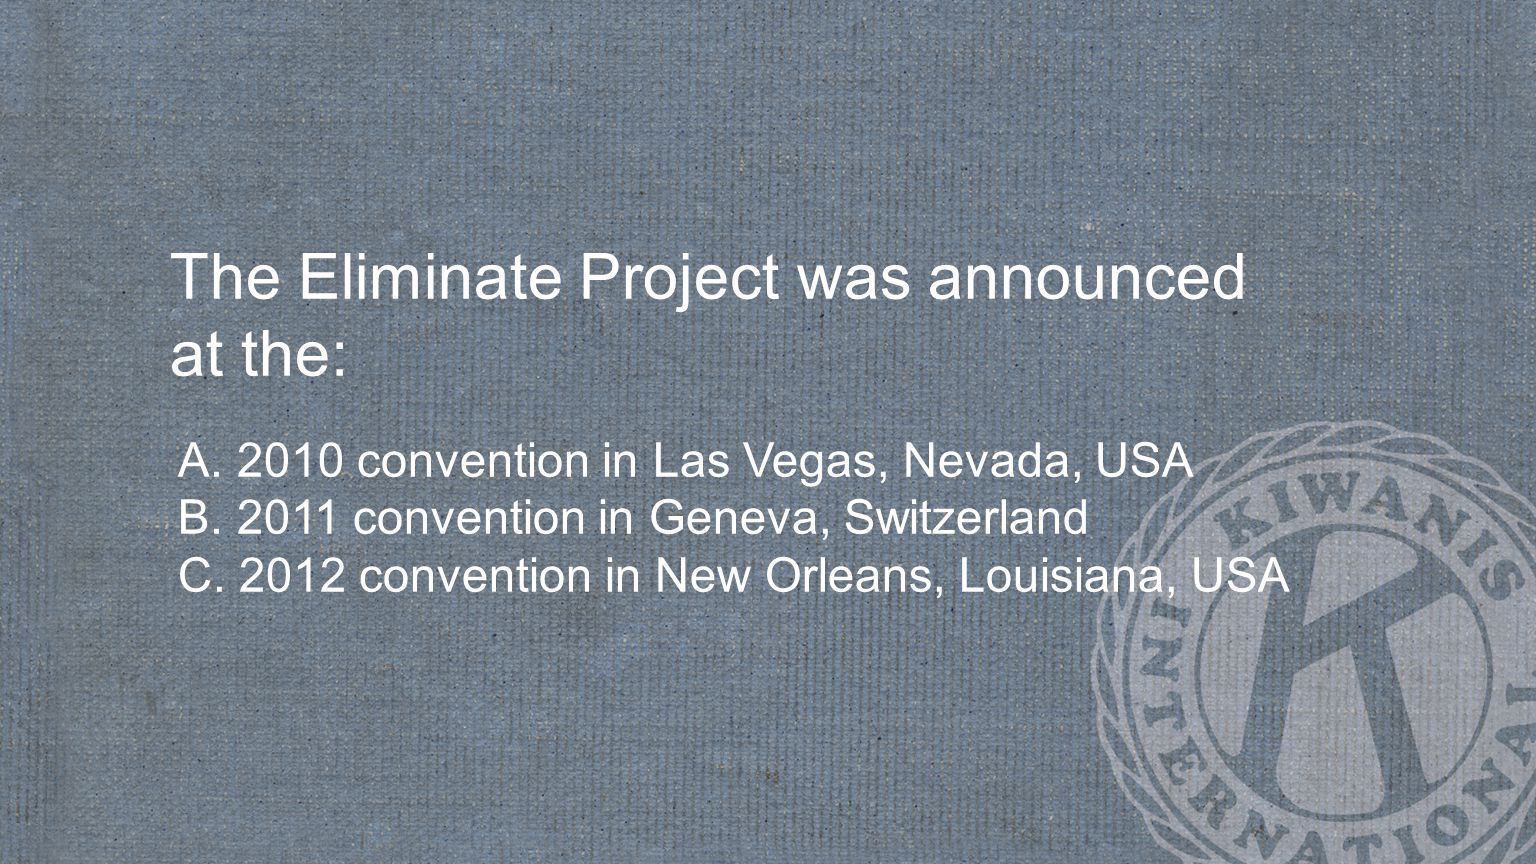 The Eliminate Project was announced at the: